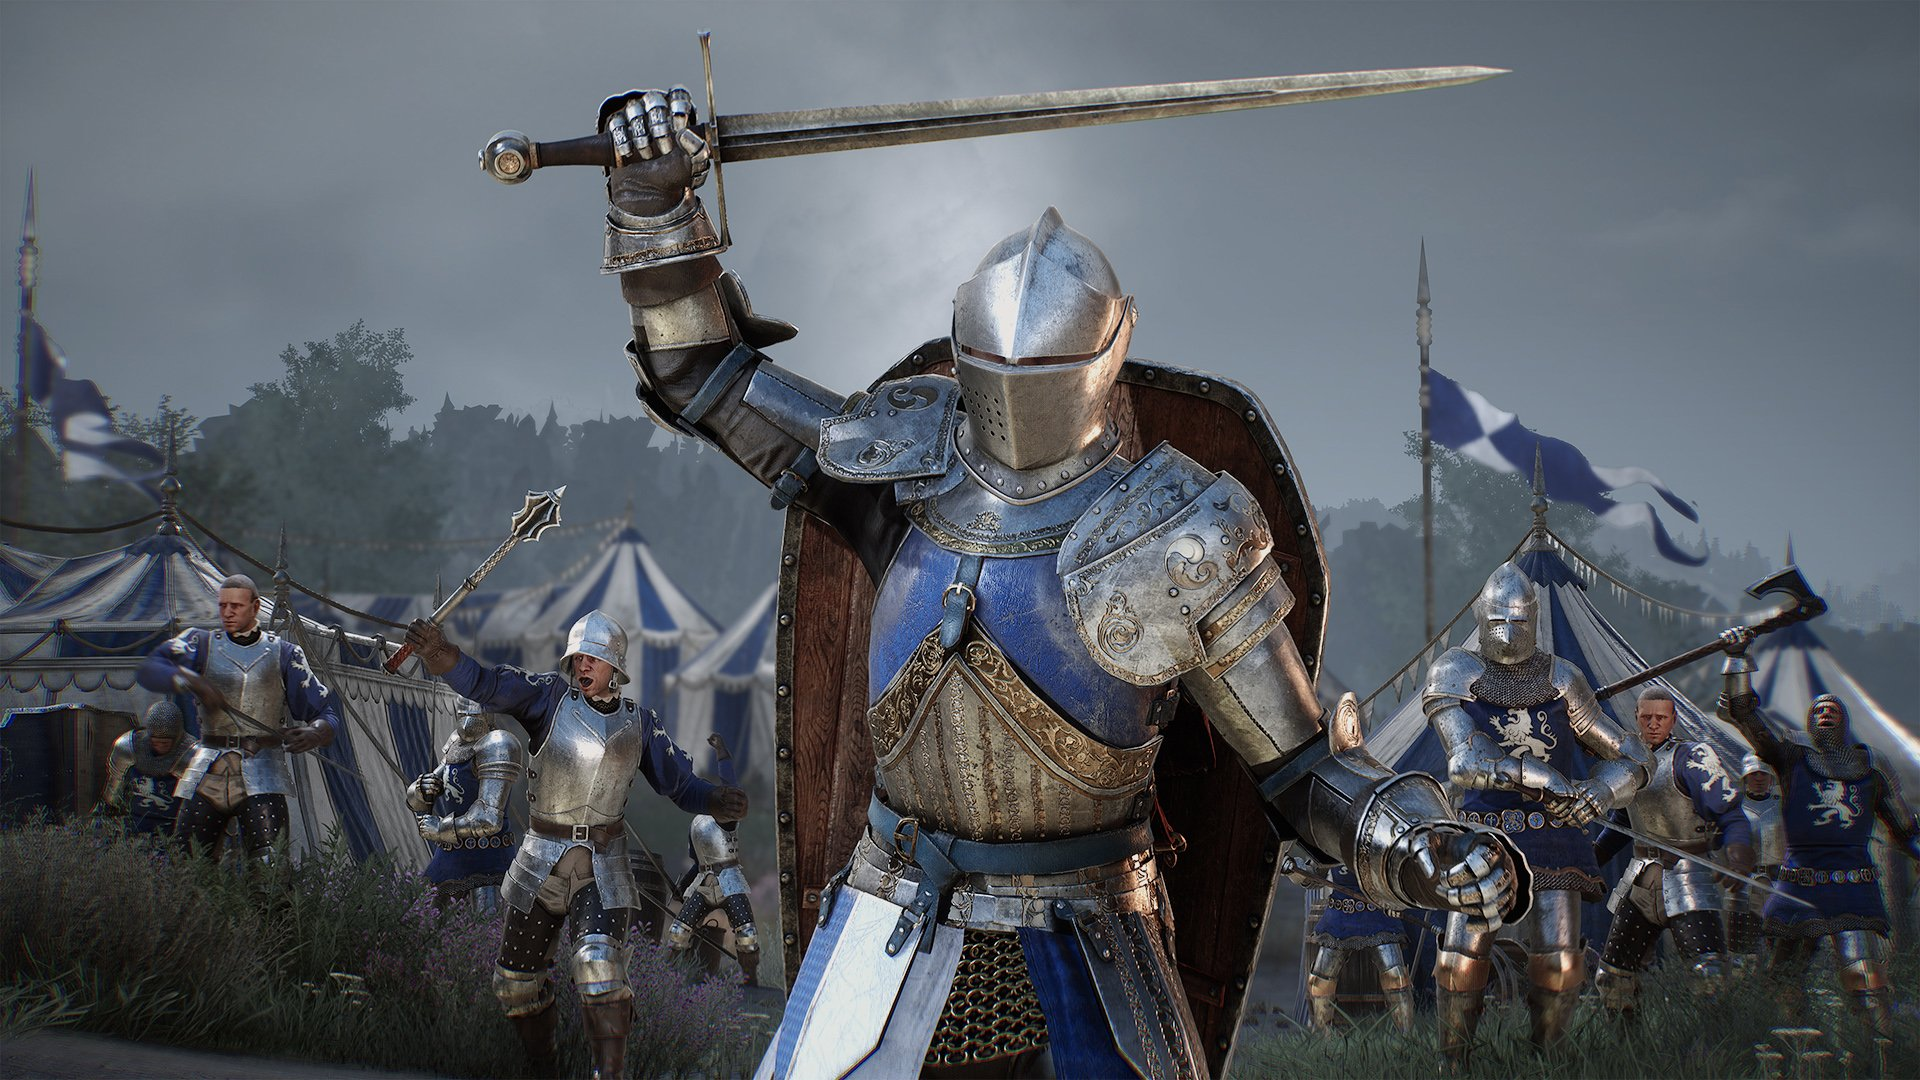 Chivalry 2 HD Wallpaper | Background Image | 1920x1080 | ID:1021913 -  Wallpaper Abyss